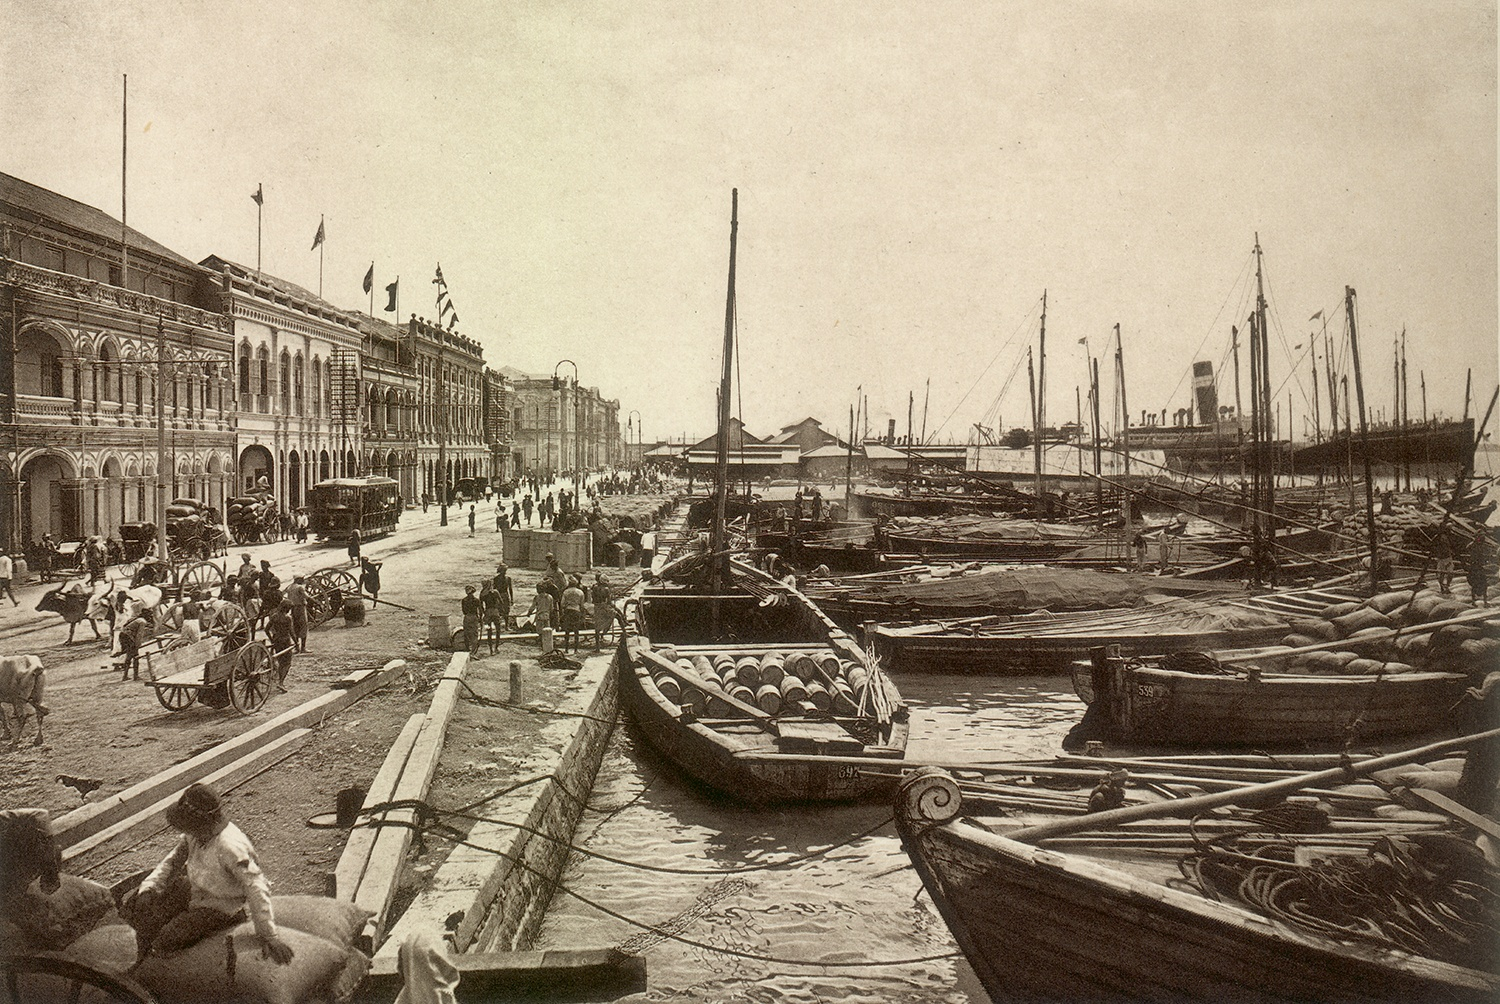 Wharf at George Town, c. 1910. Courtesy of Wikimedia Commons.